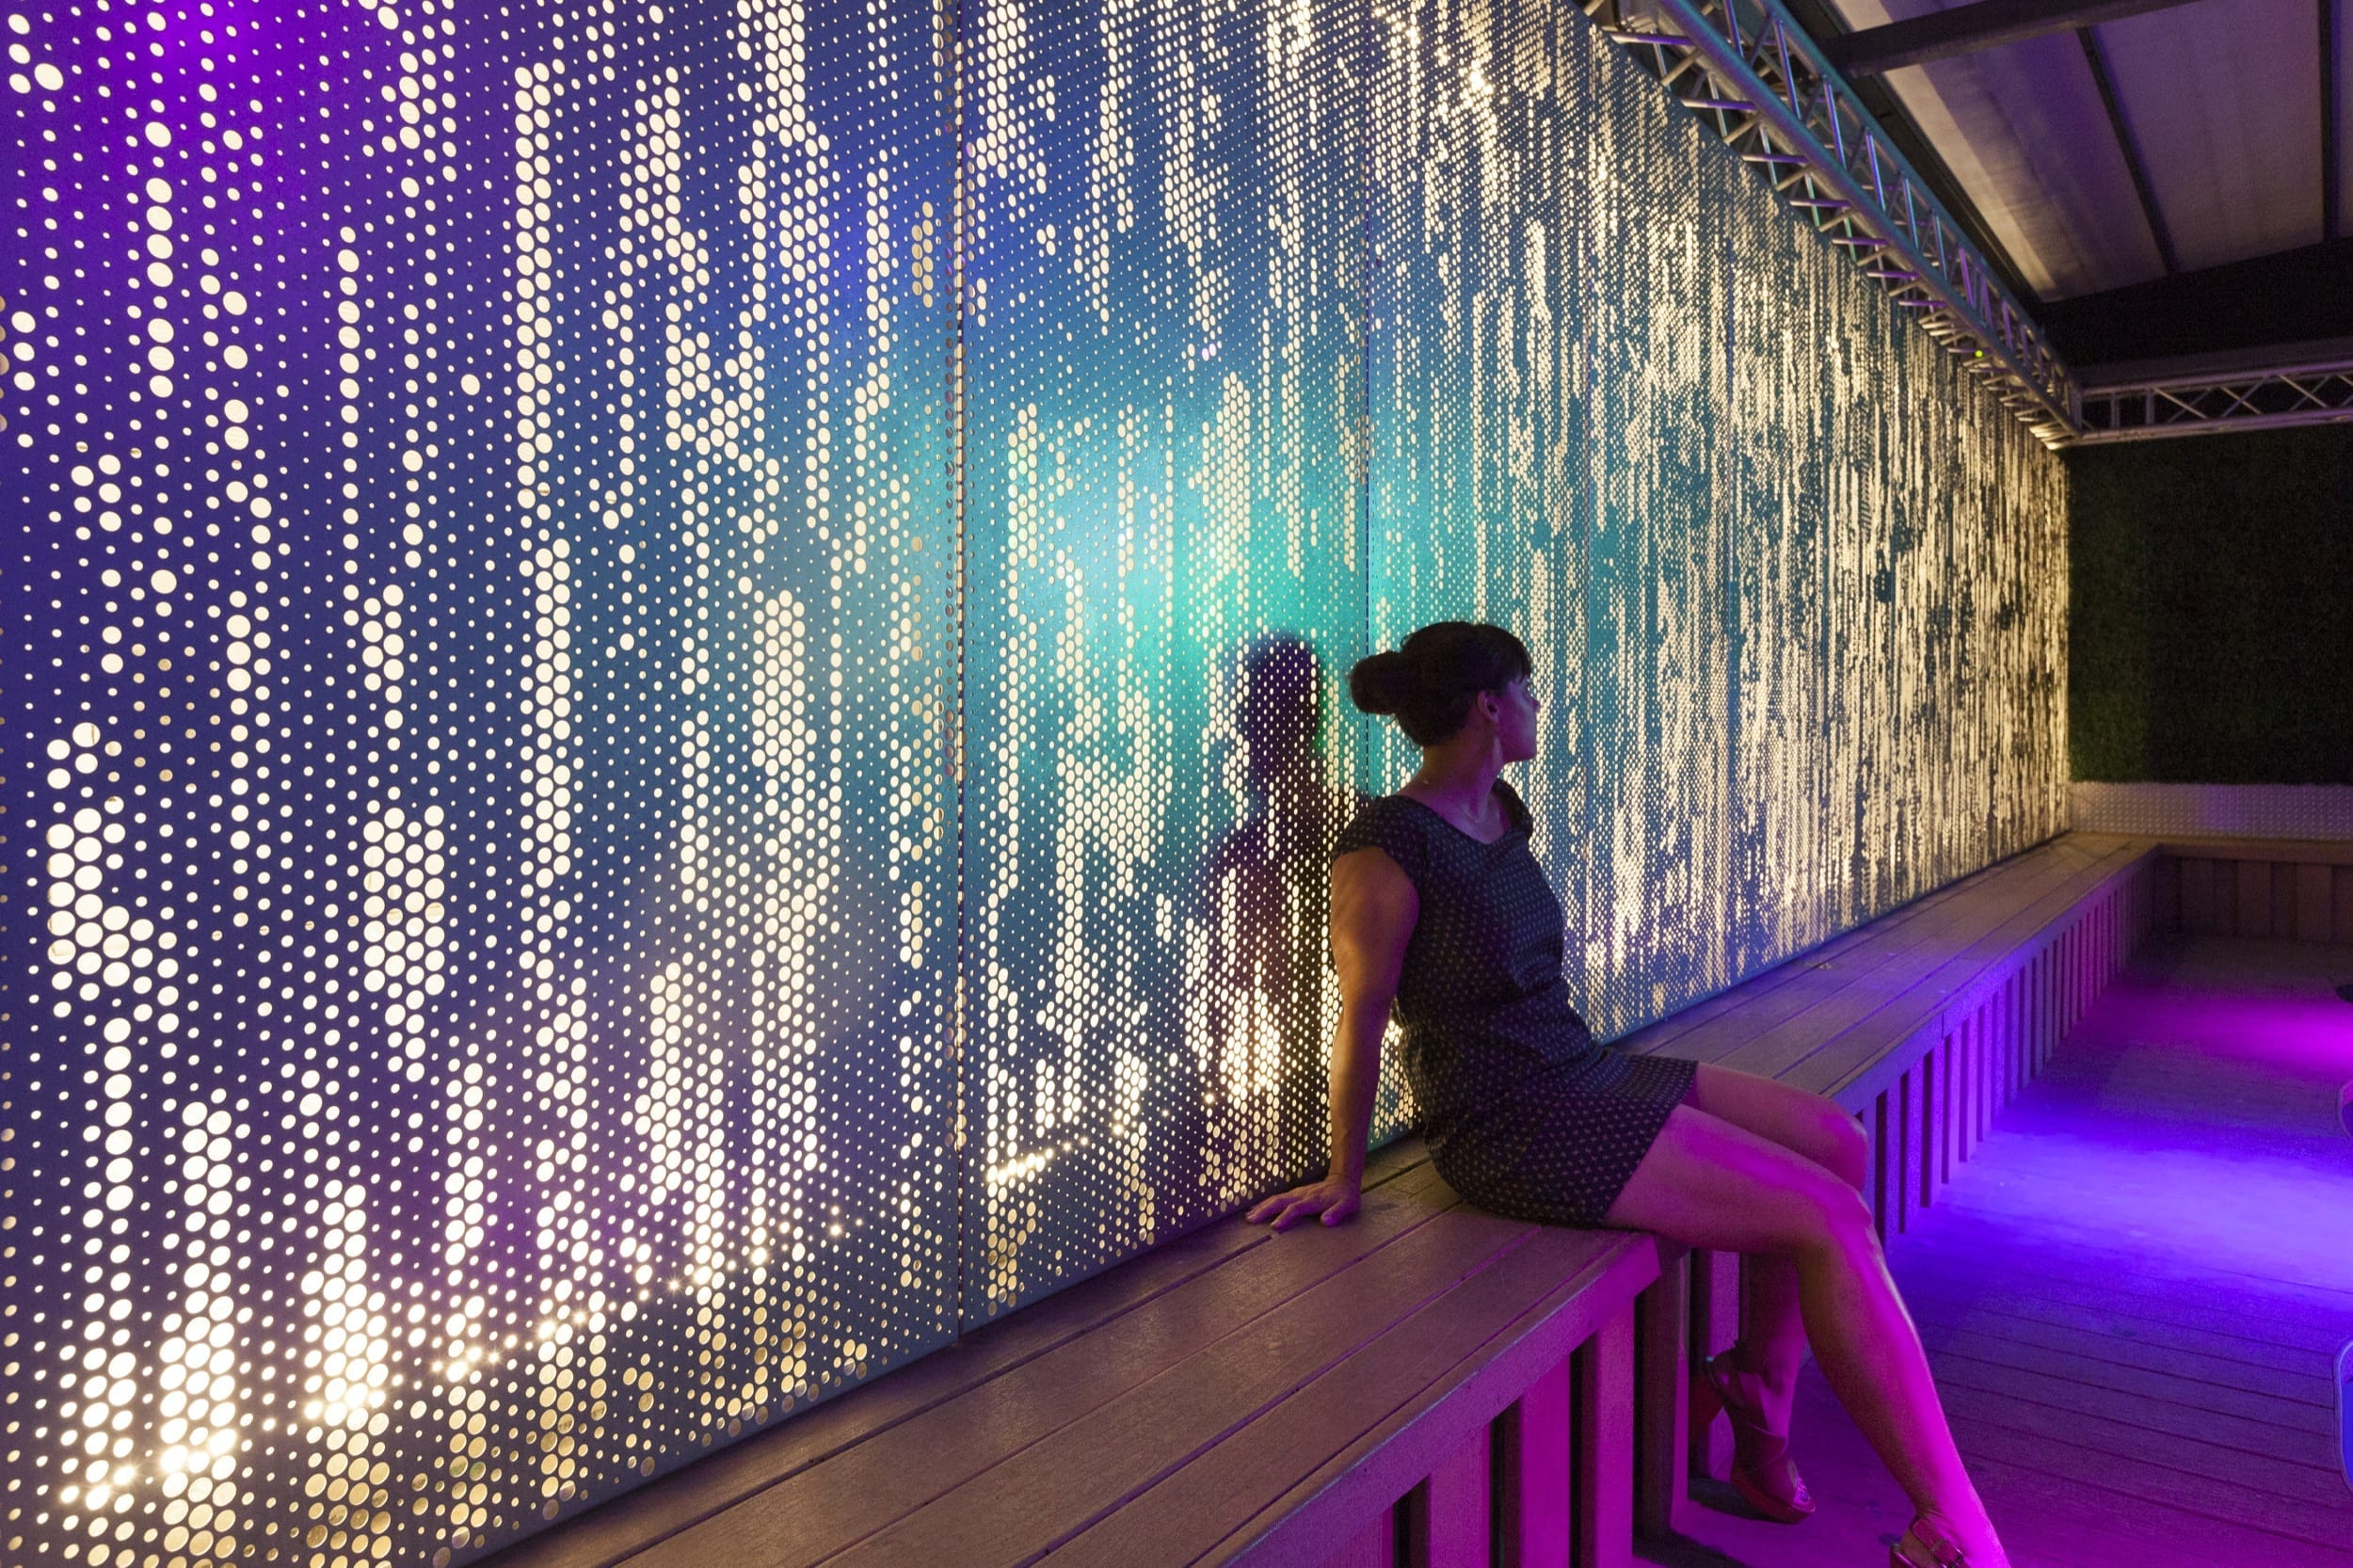 An illuminated ImageWall screen provides a dramatic backdrop for an event space